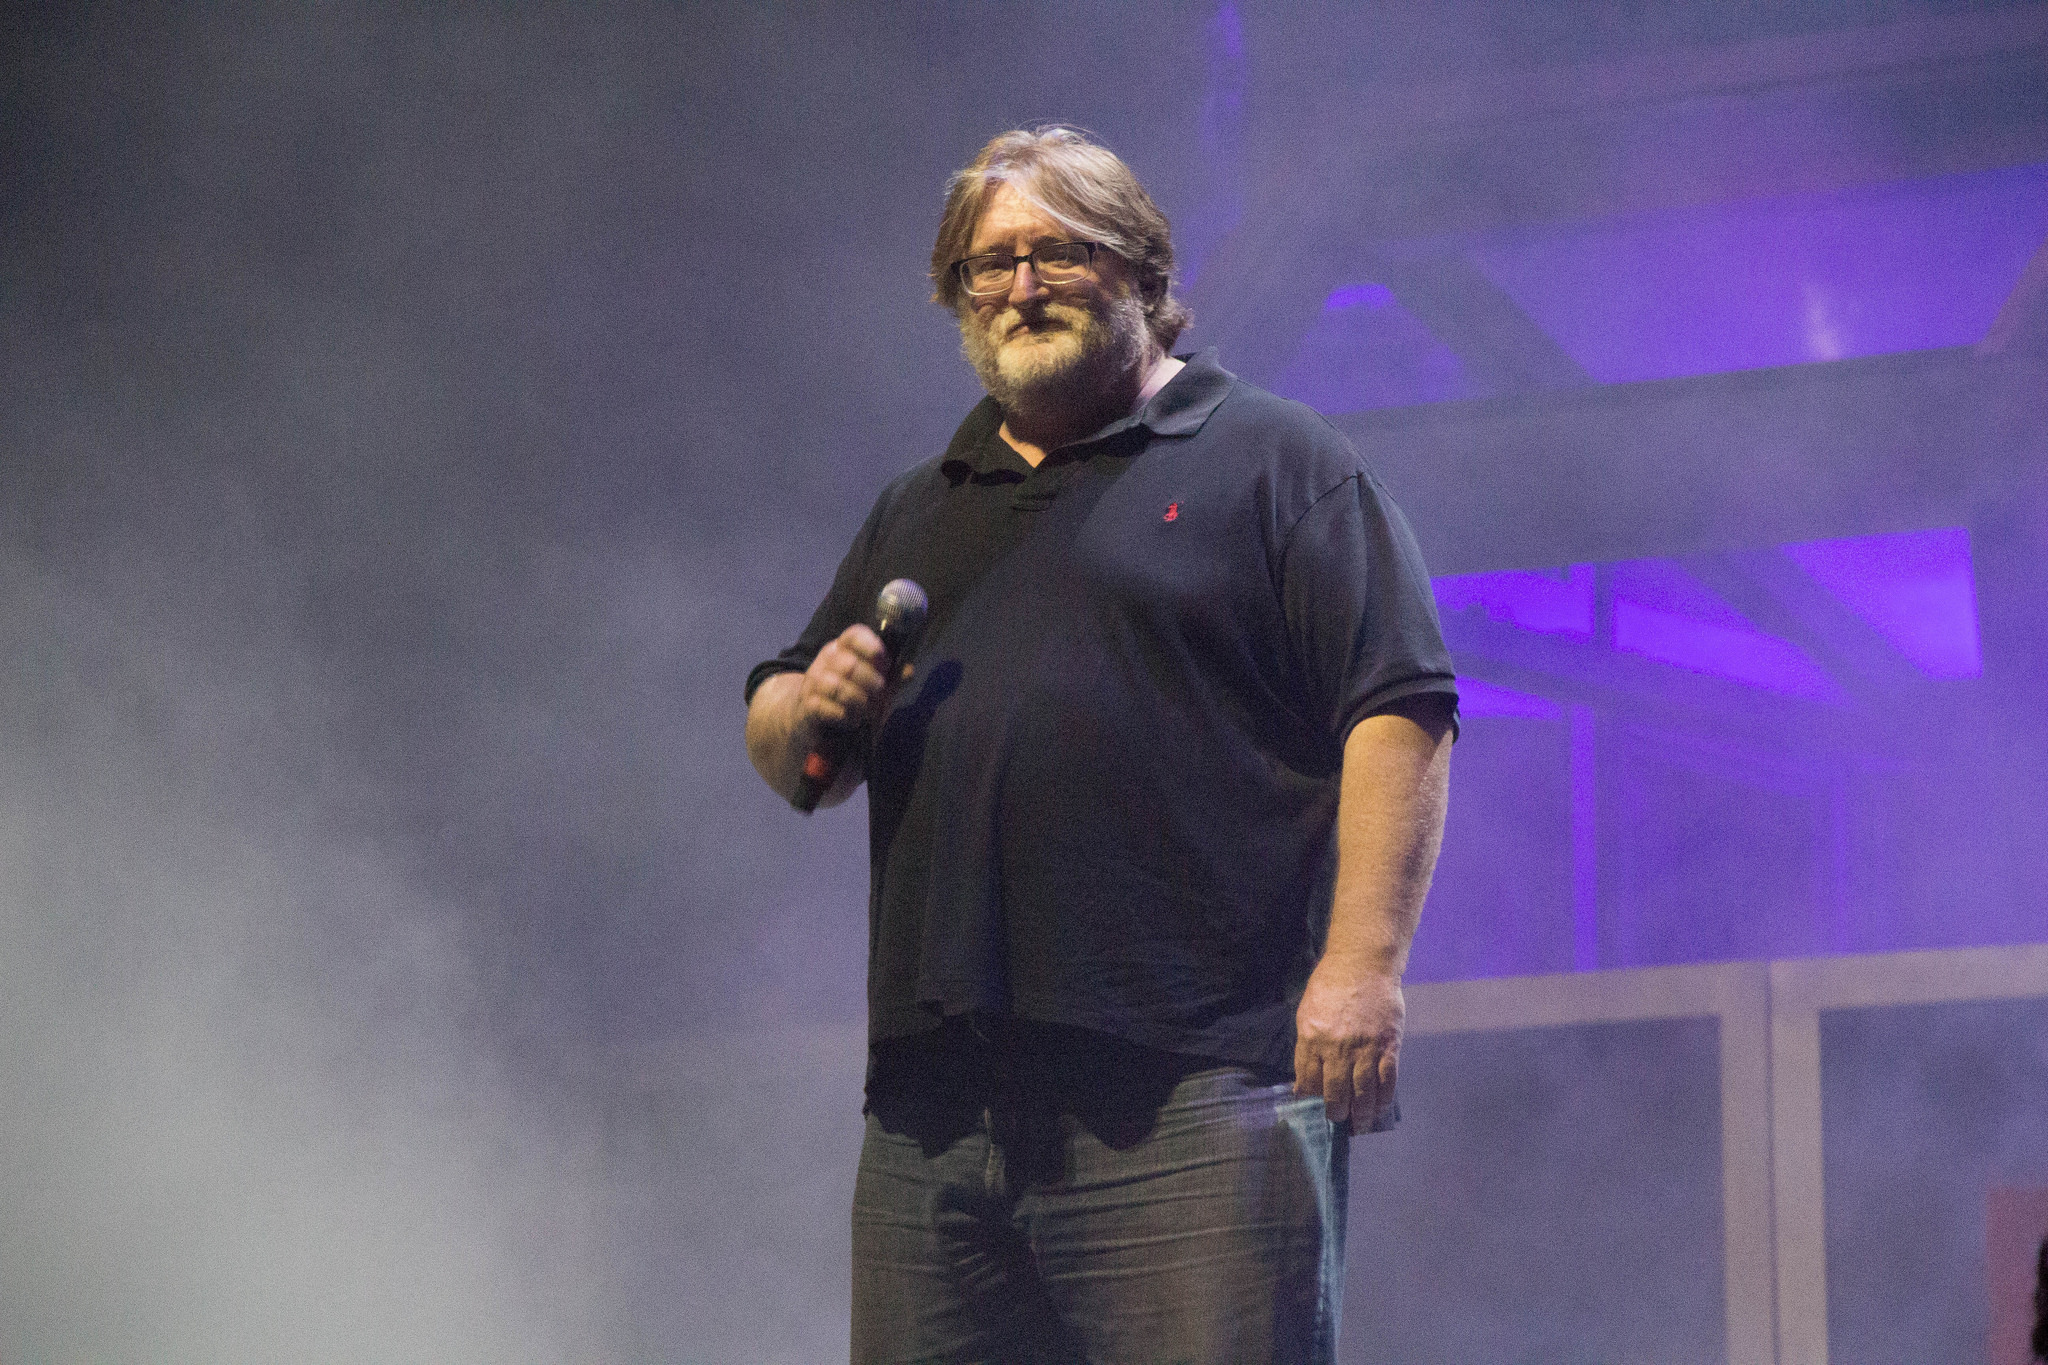 Gabe Newell, Co-Founder of Valve